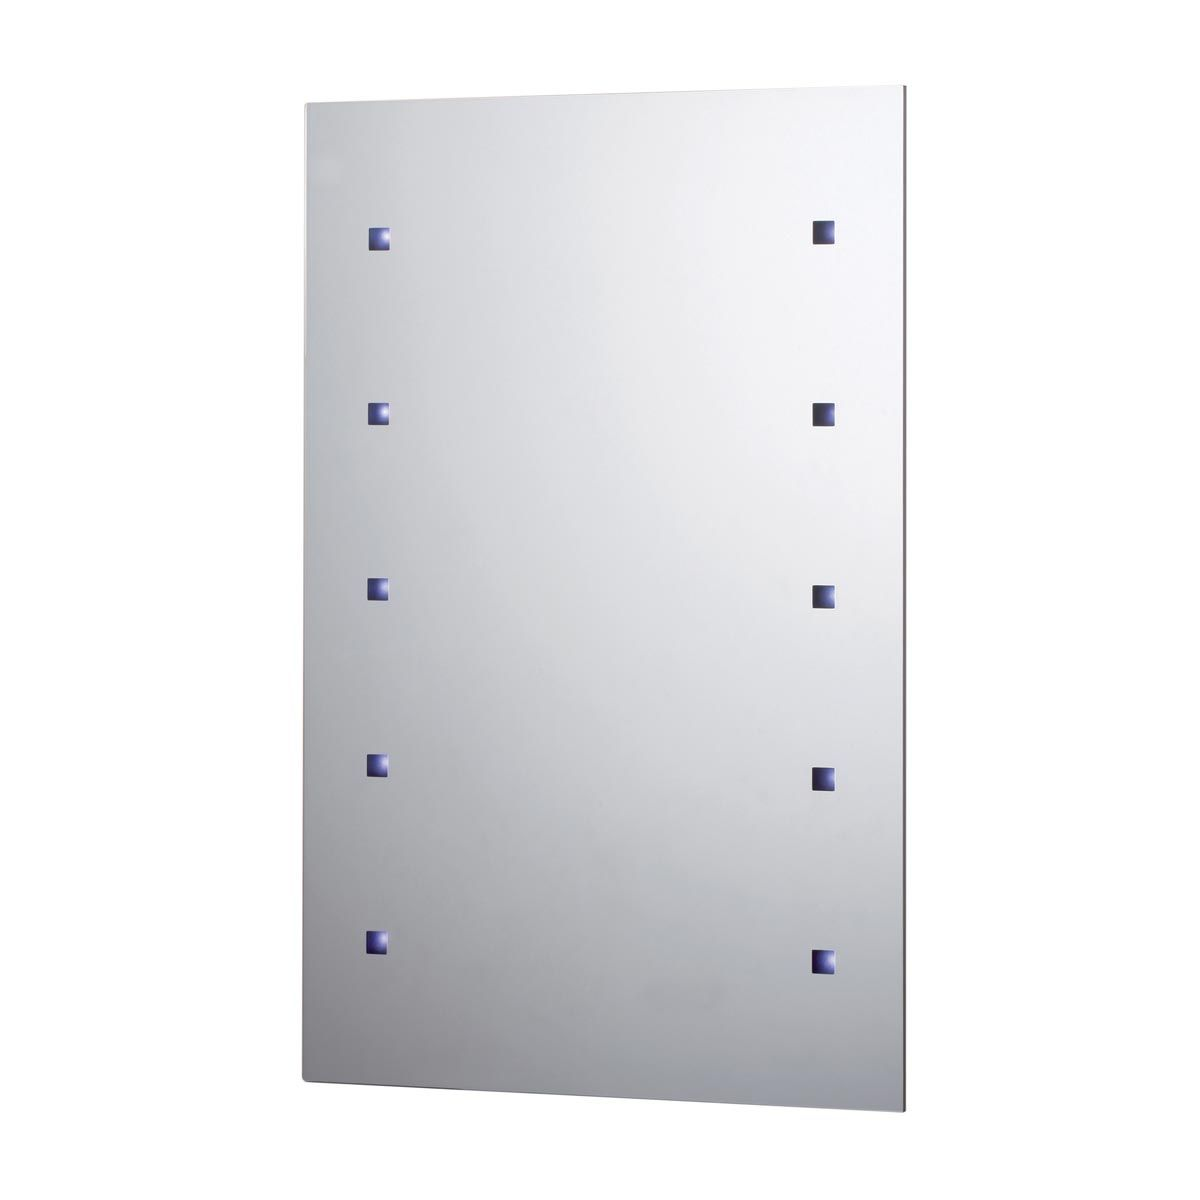 10 LED Battery Operated Bathroom Mirror 450 x 300mm